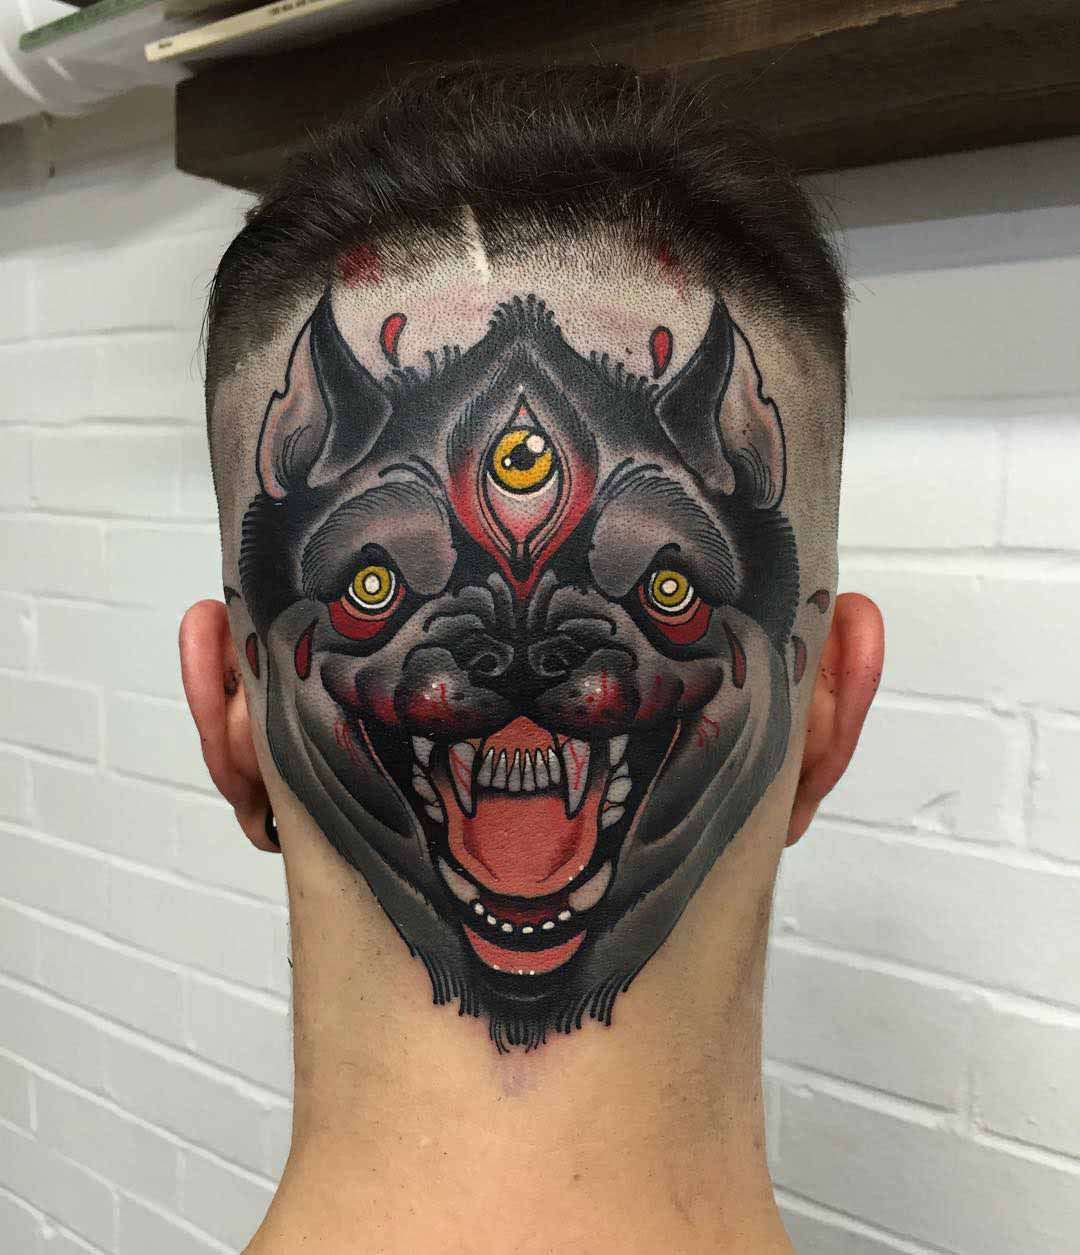 third eye tattoo on back of the hand